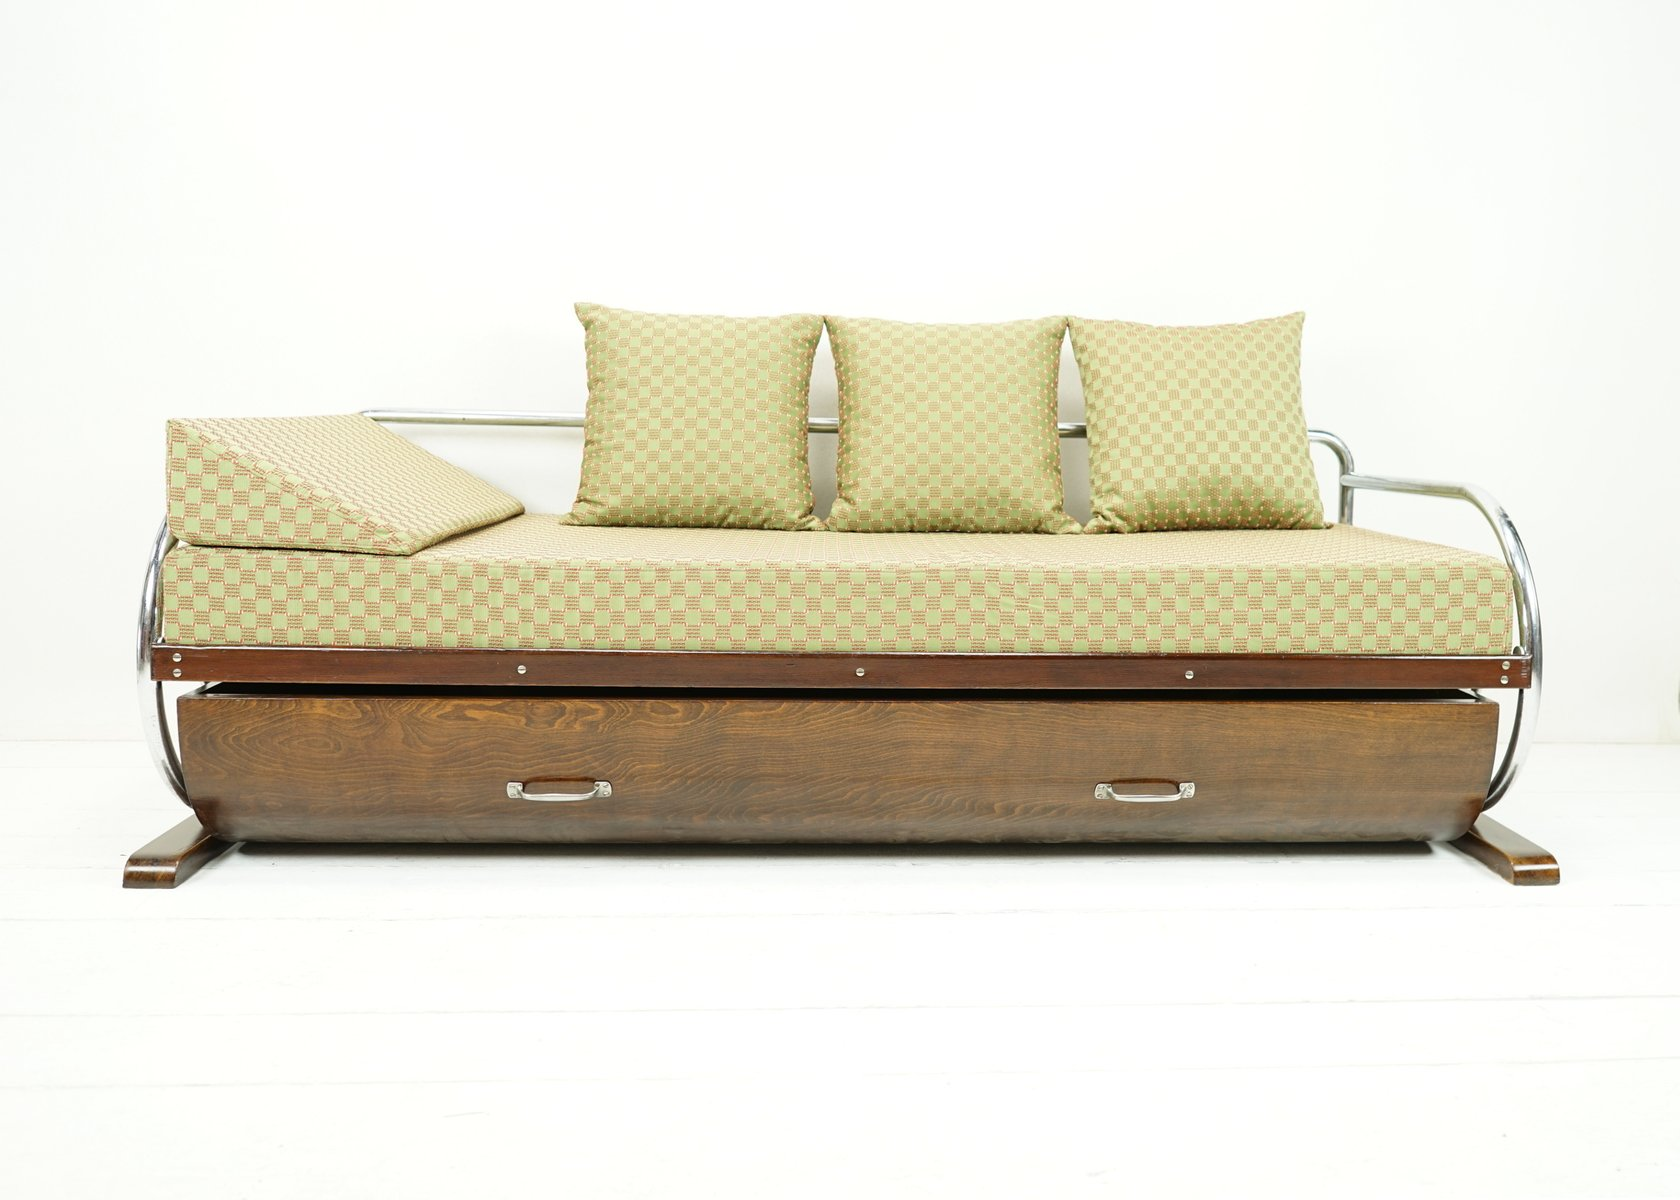 Bauhaus daybed sofa with bed drawer from gottwald for sale for Sofa bed germany